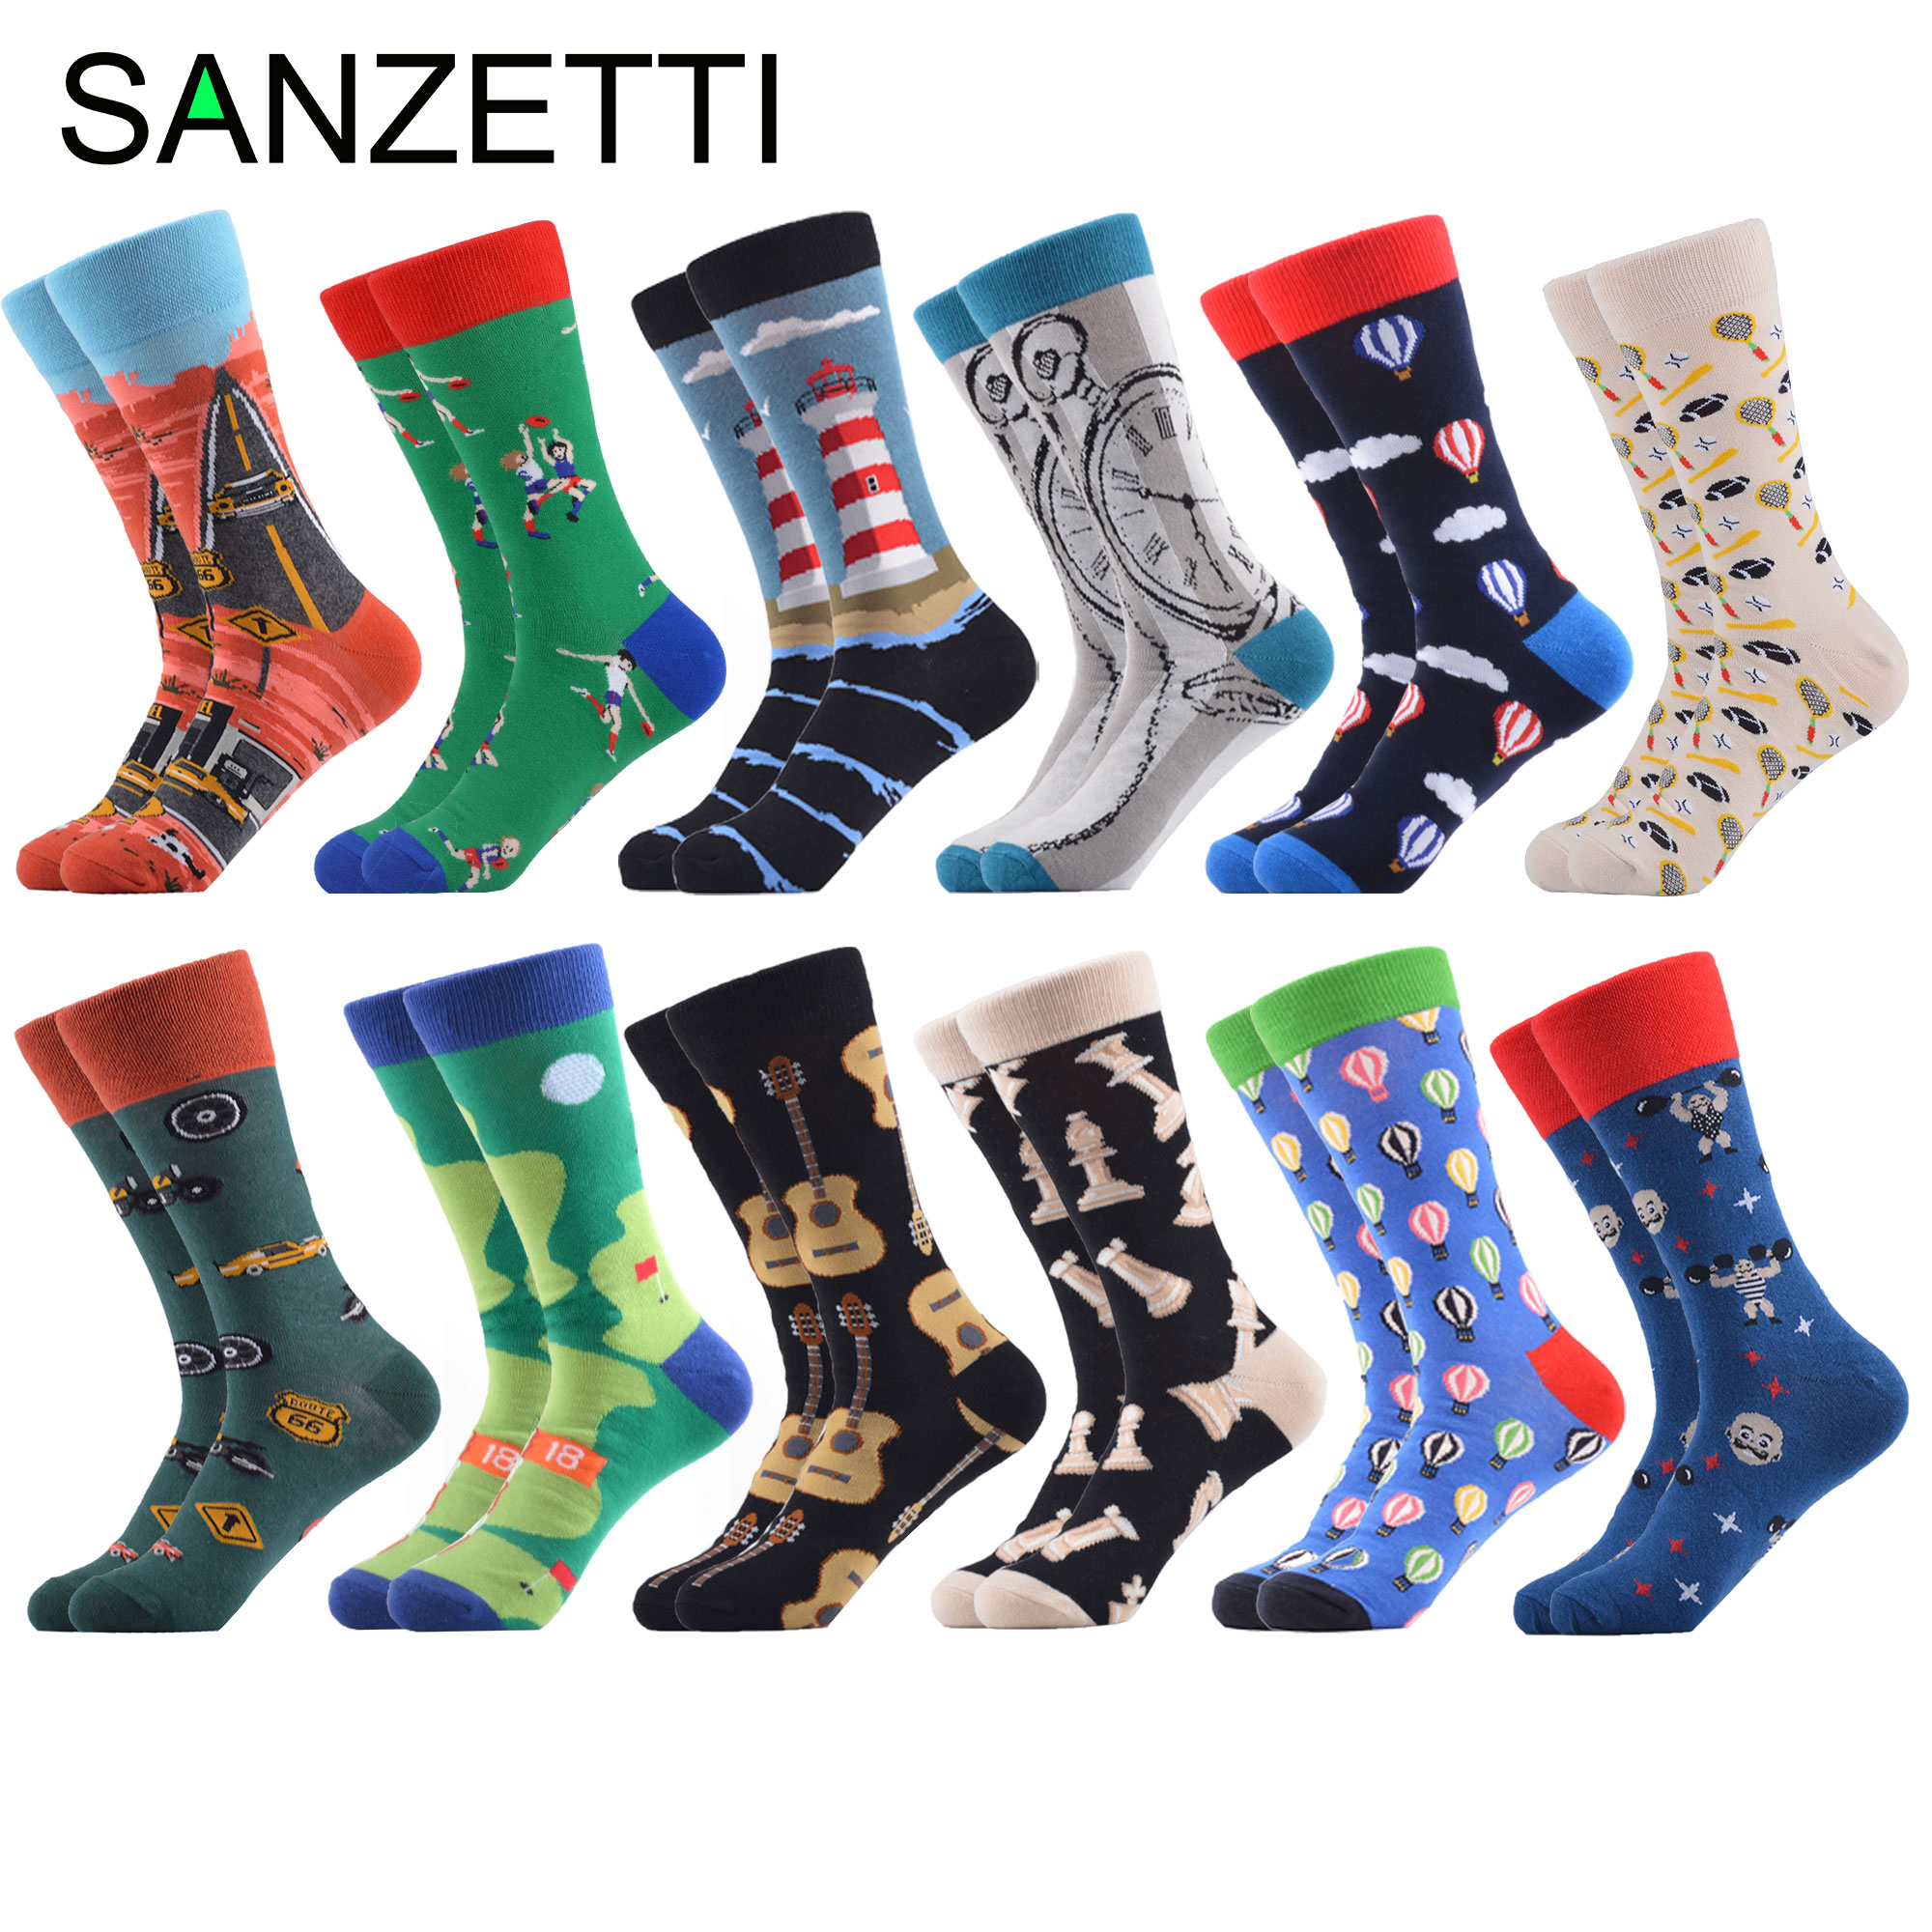 SANZETTI 12 Pairs Fashion Men's Skateboard Socks Long Leisure Creative Funny Male Cotton Dress Casual Design Party Sport Socks